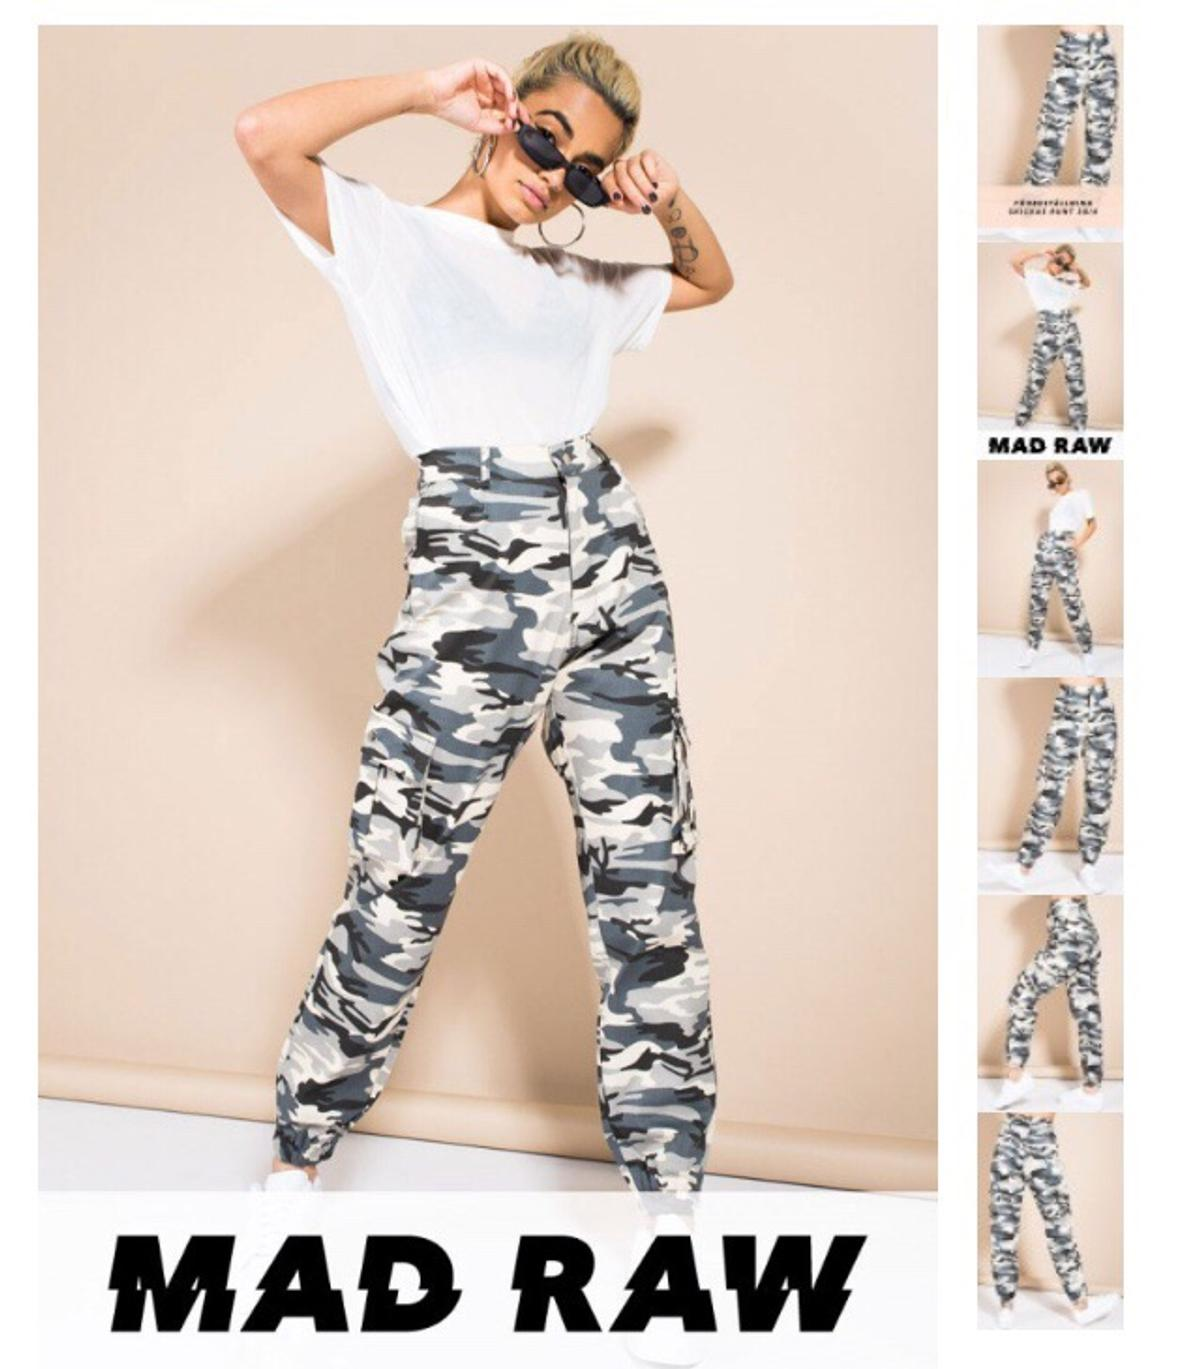 ae745b4390ba MADLAY CAMO PANTS in 12832 Stockholm for SEK 350.00 for sale - Shpock